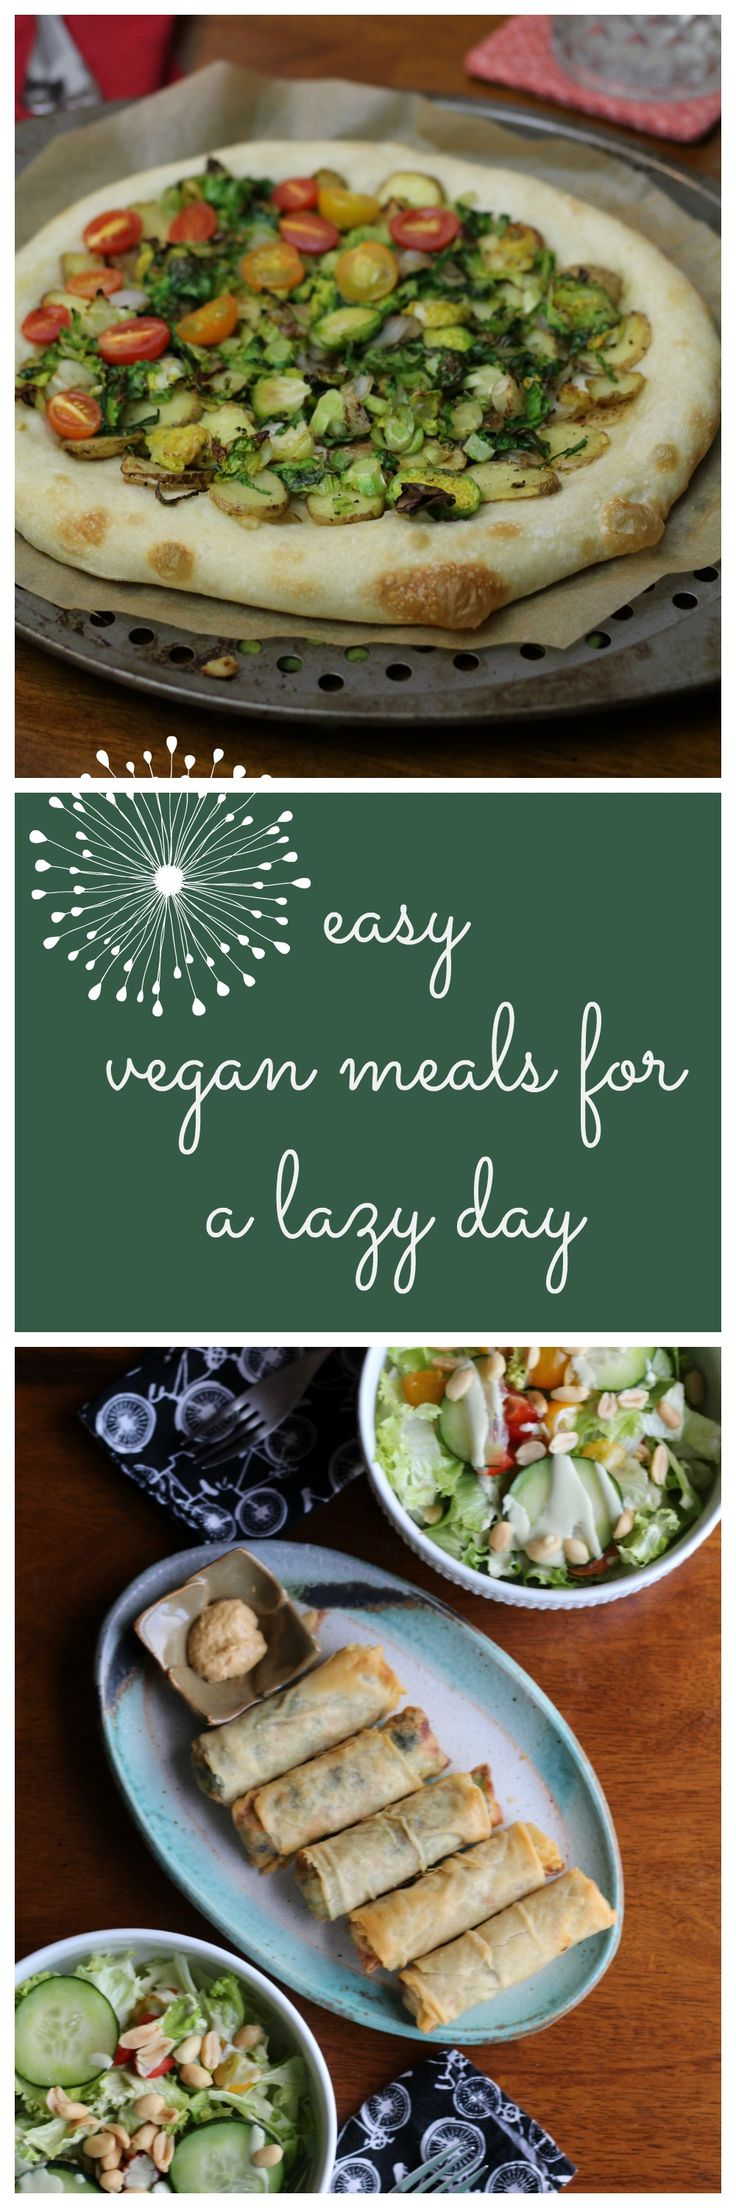 What vegans eat: Food for lazy days - Cadry's Kitchen